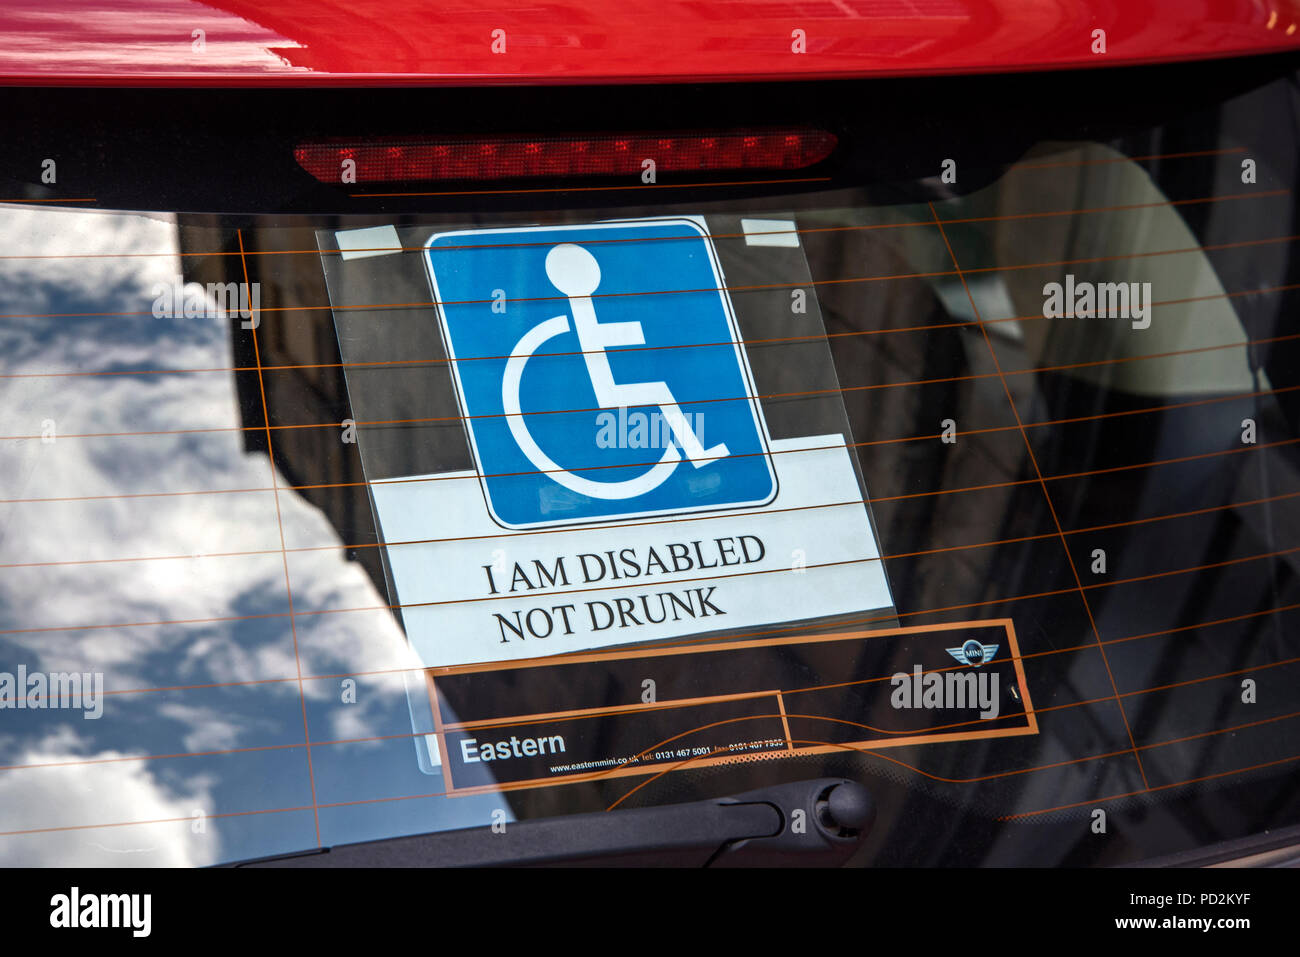 A disabled sticker on a car windscreen with the words, 'I Am Disabled, Not Drunk'. - Stock Image